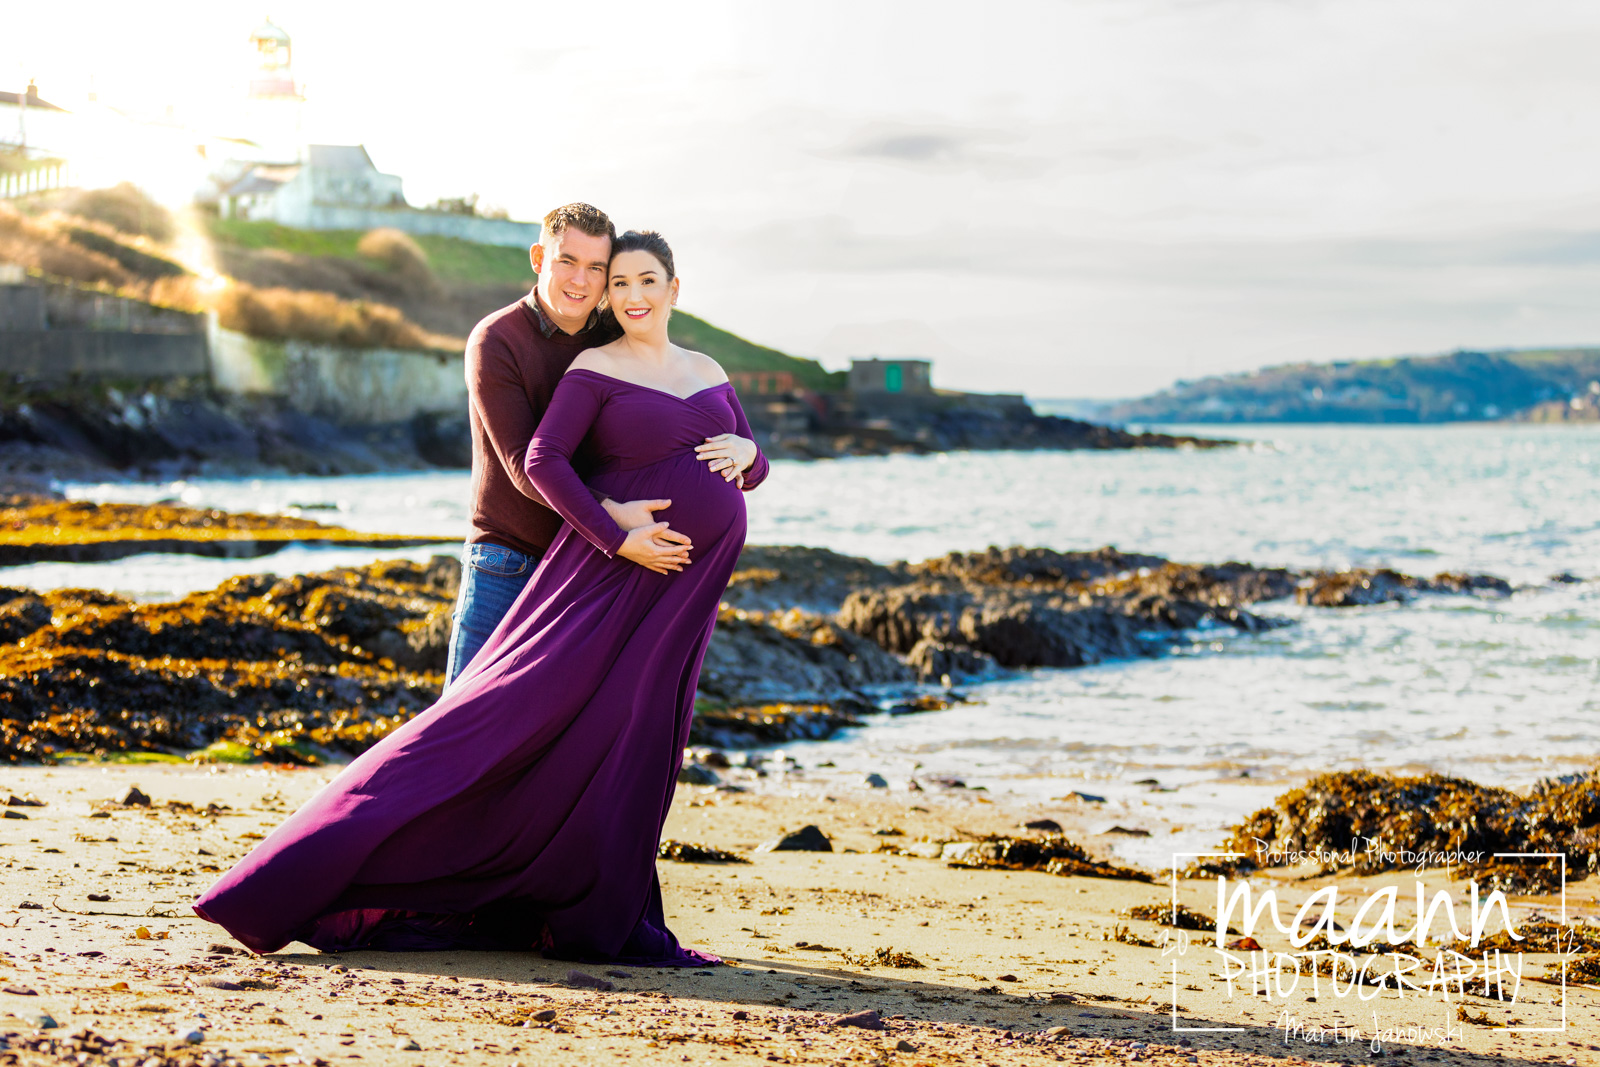 Maternity Photography | Pregnancy Photography | Maann Photography